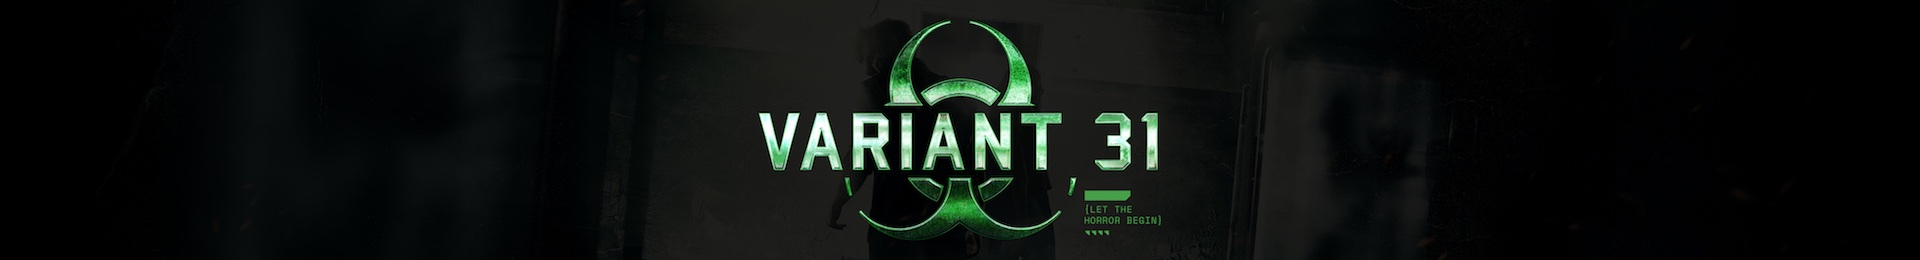 Variant 31: An Immersive Survival Experience banner image